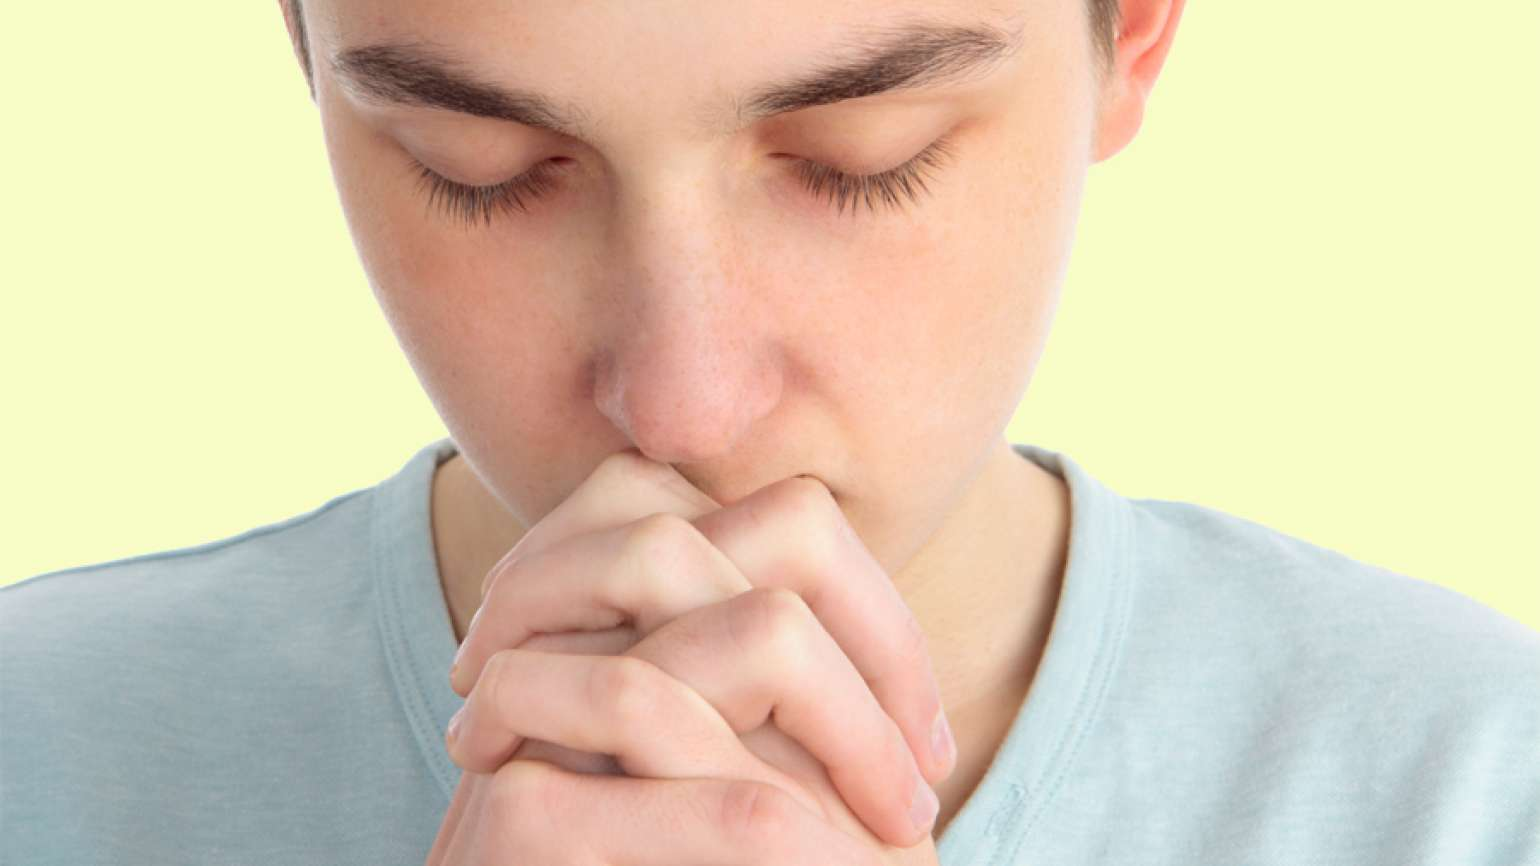 A teenage boy clasps his hands in prayer.